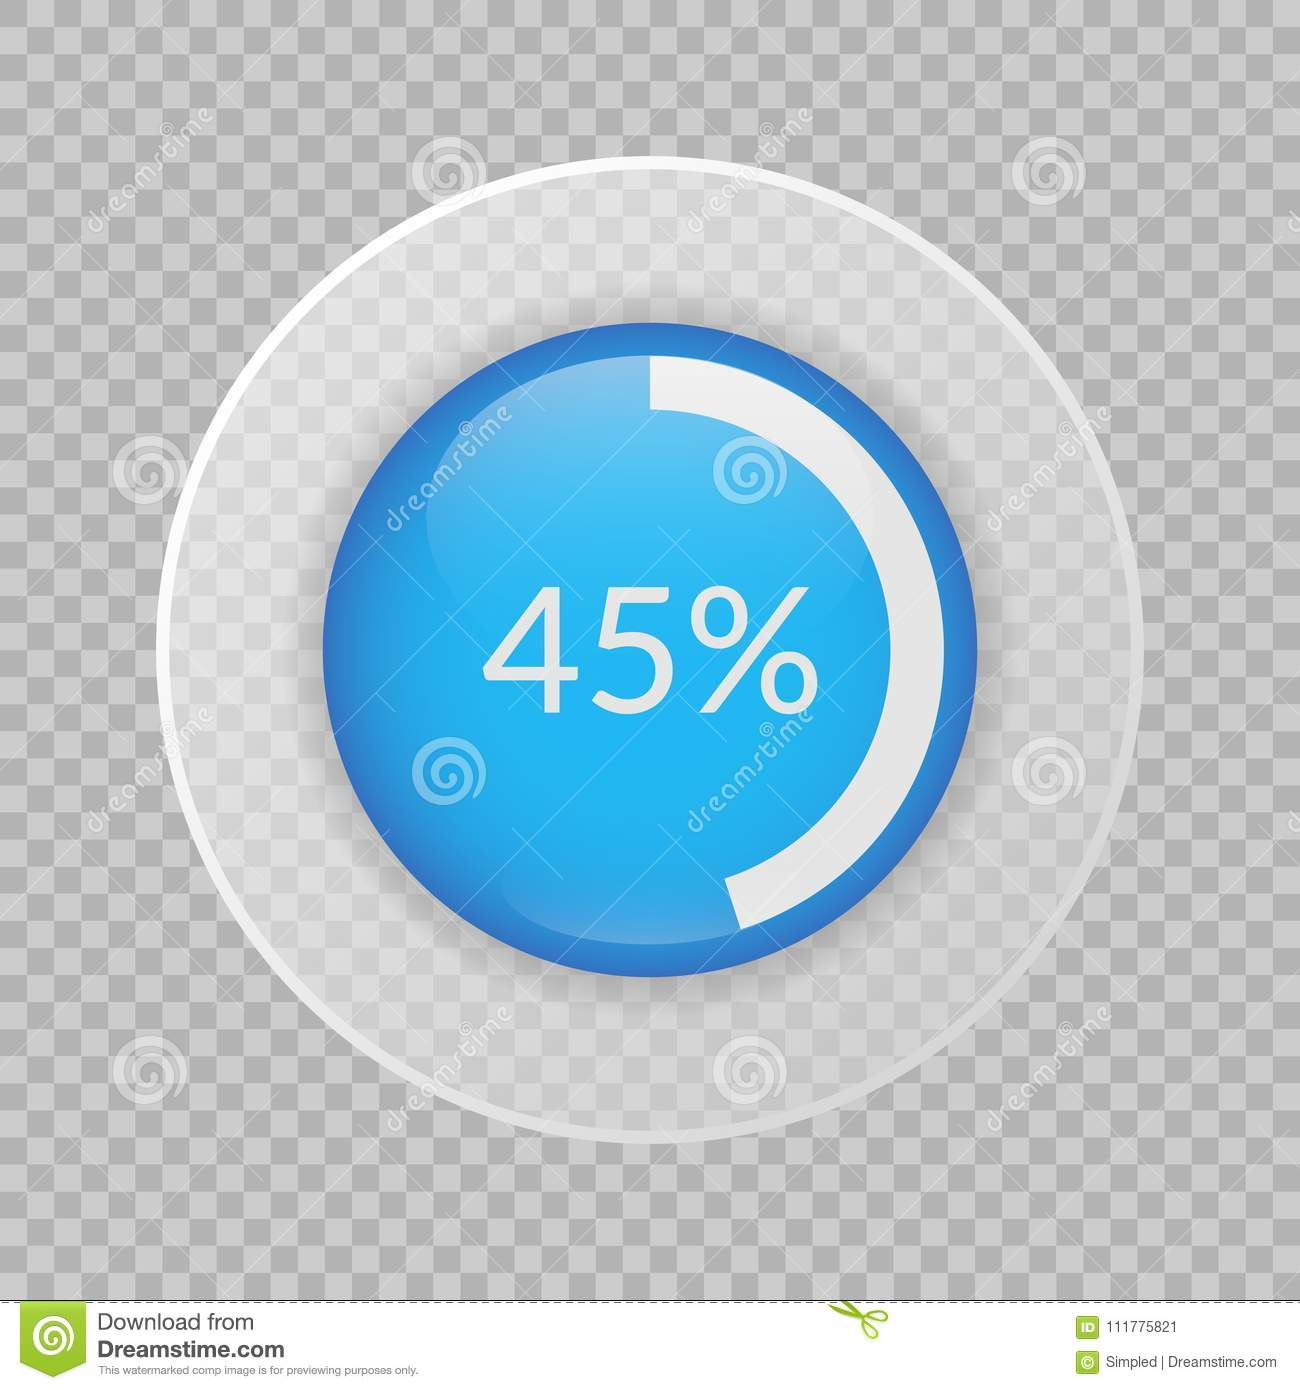 45 percent pie chart on transparent background. Percentage vector icon for business